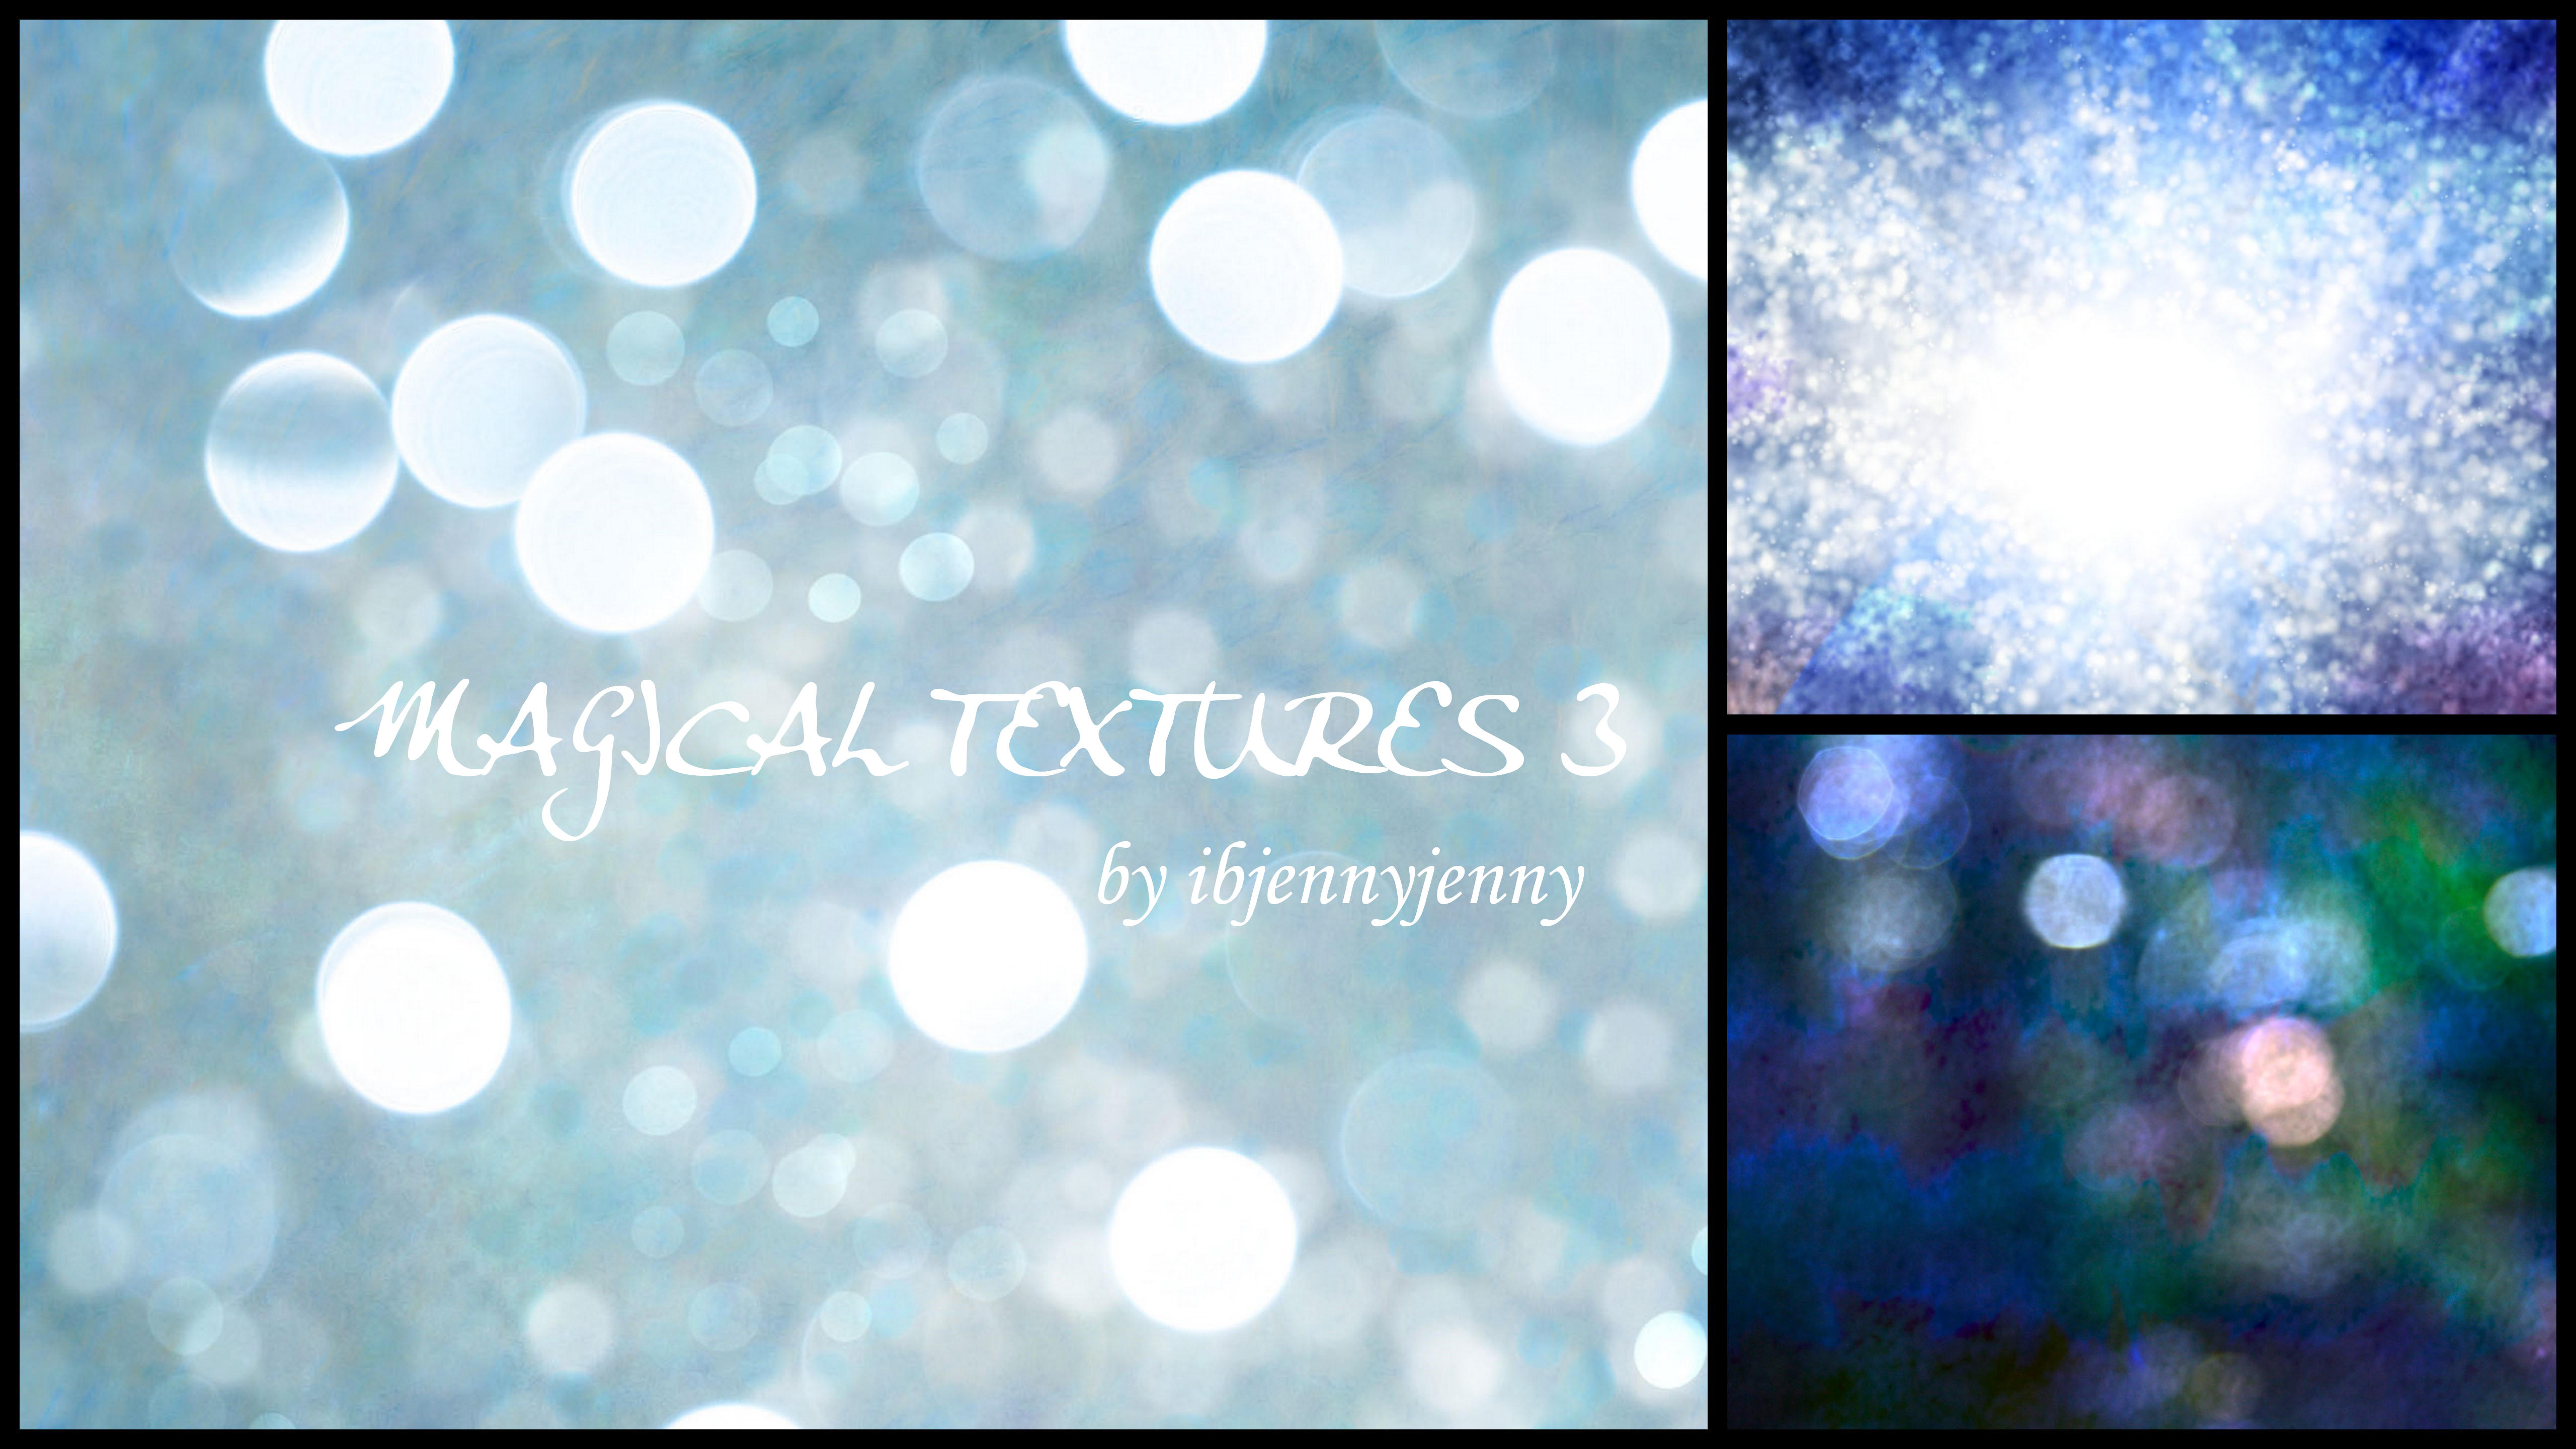 Magical Textures 3 by ibjennyjenny